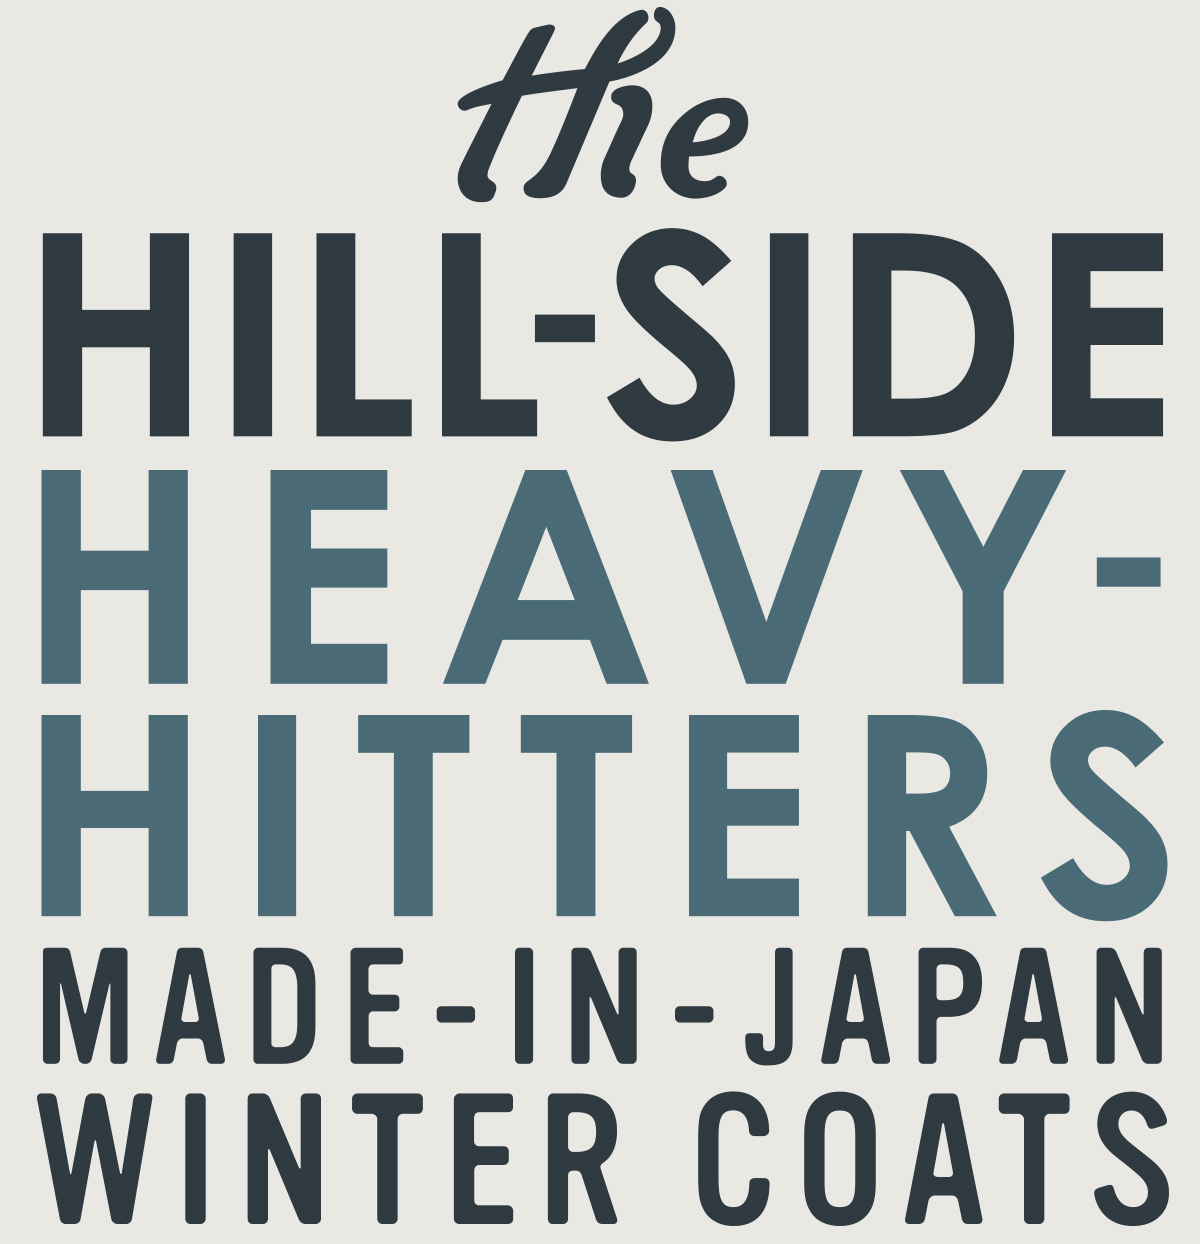 Made-In-Japan Winter Coats